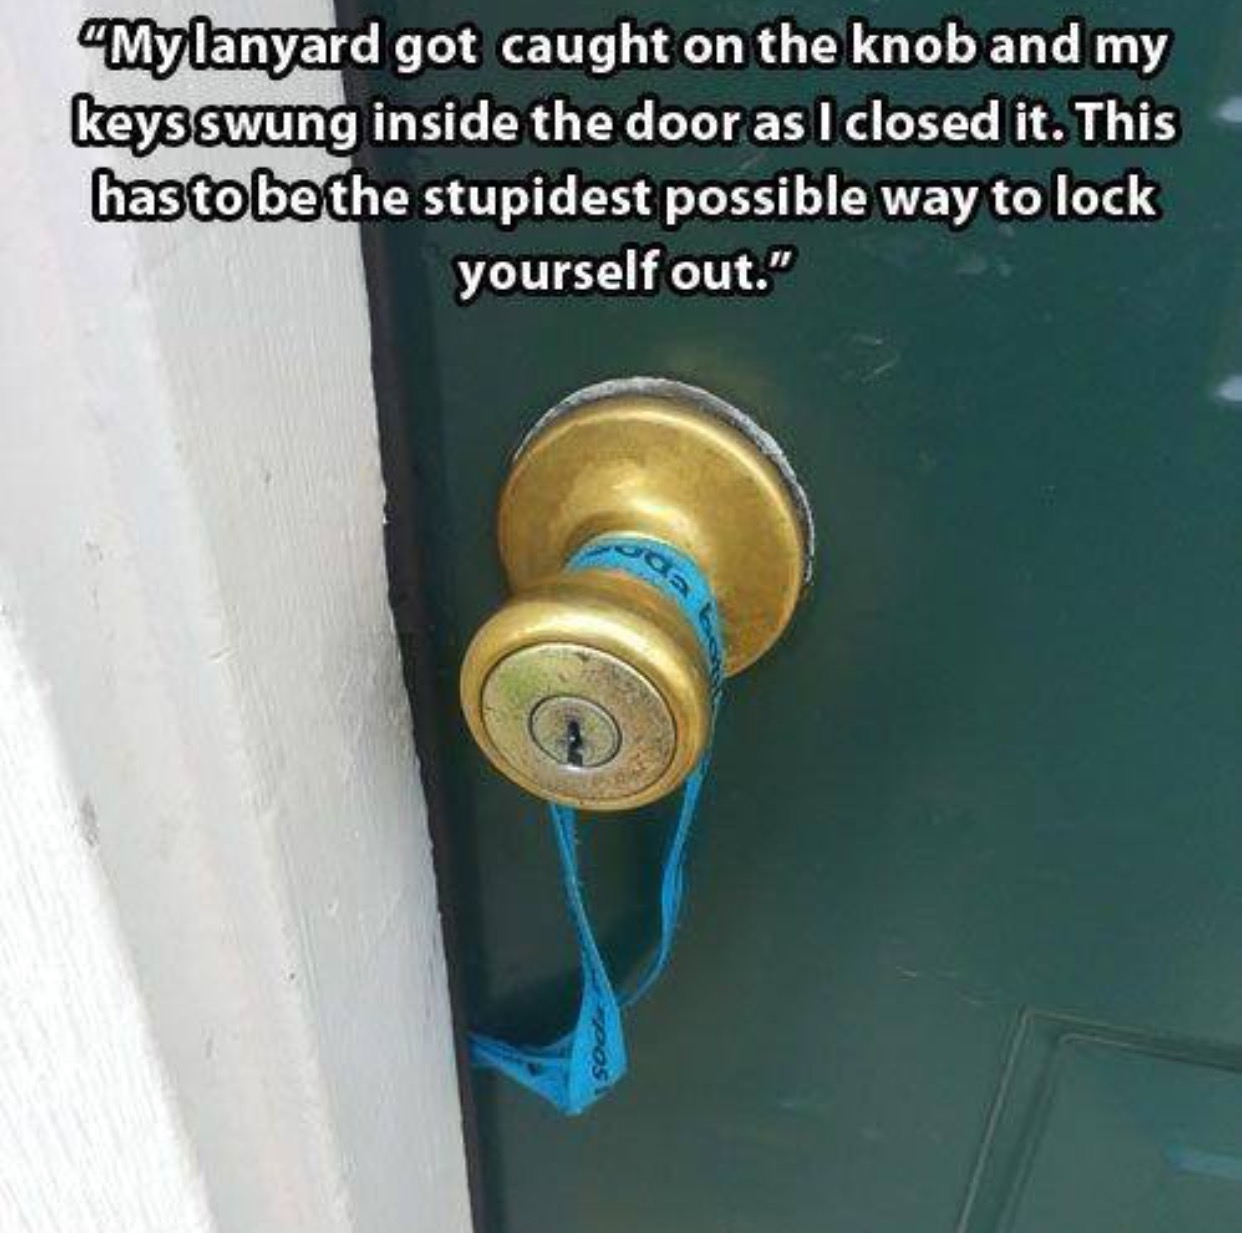 Somebody manages to lock themselves out in the most baffling way